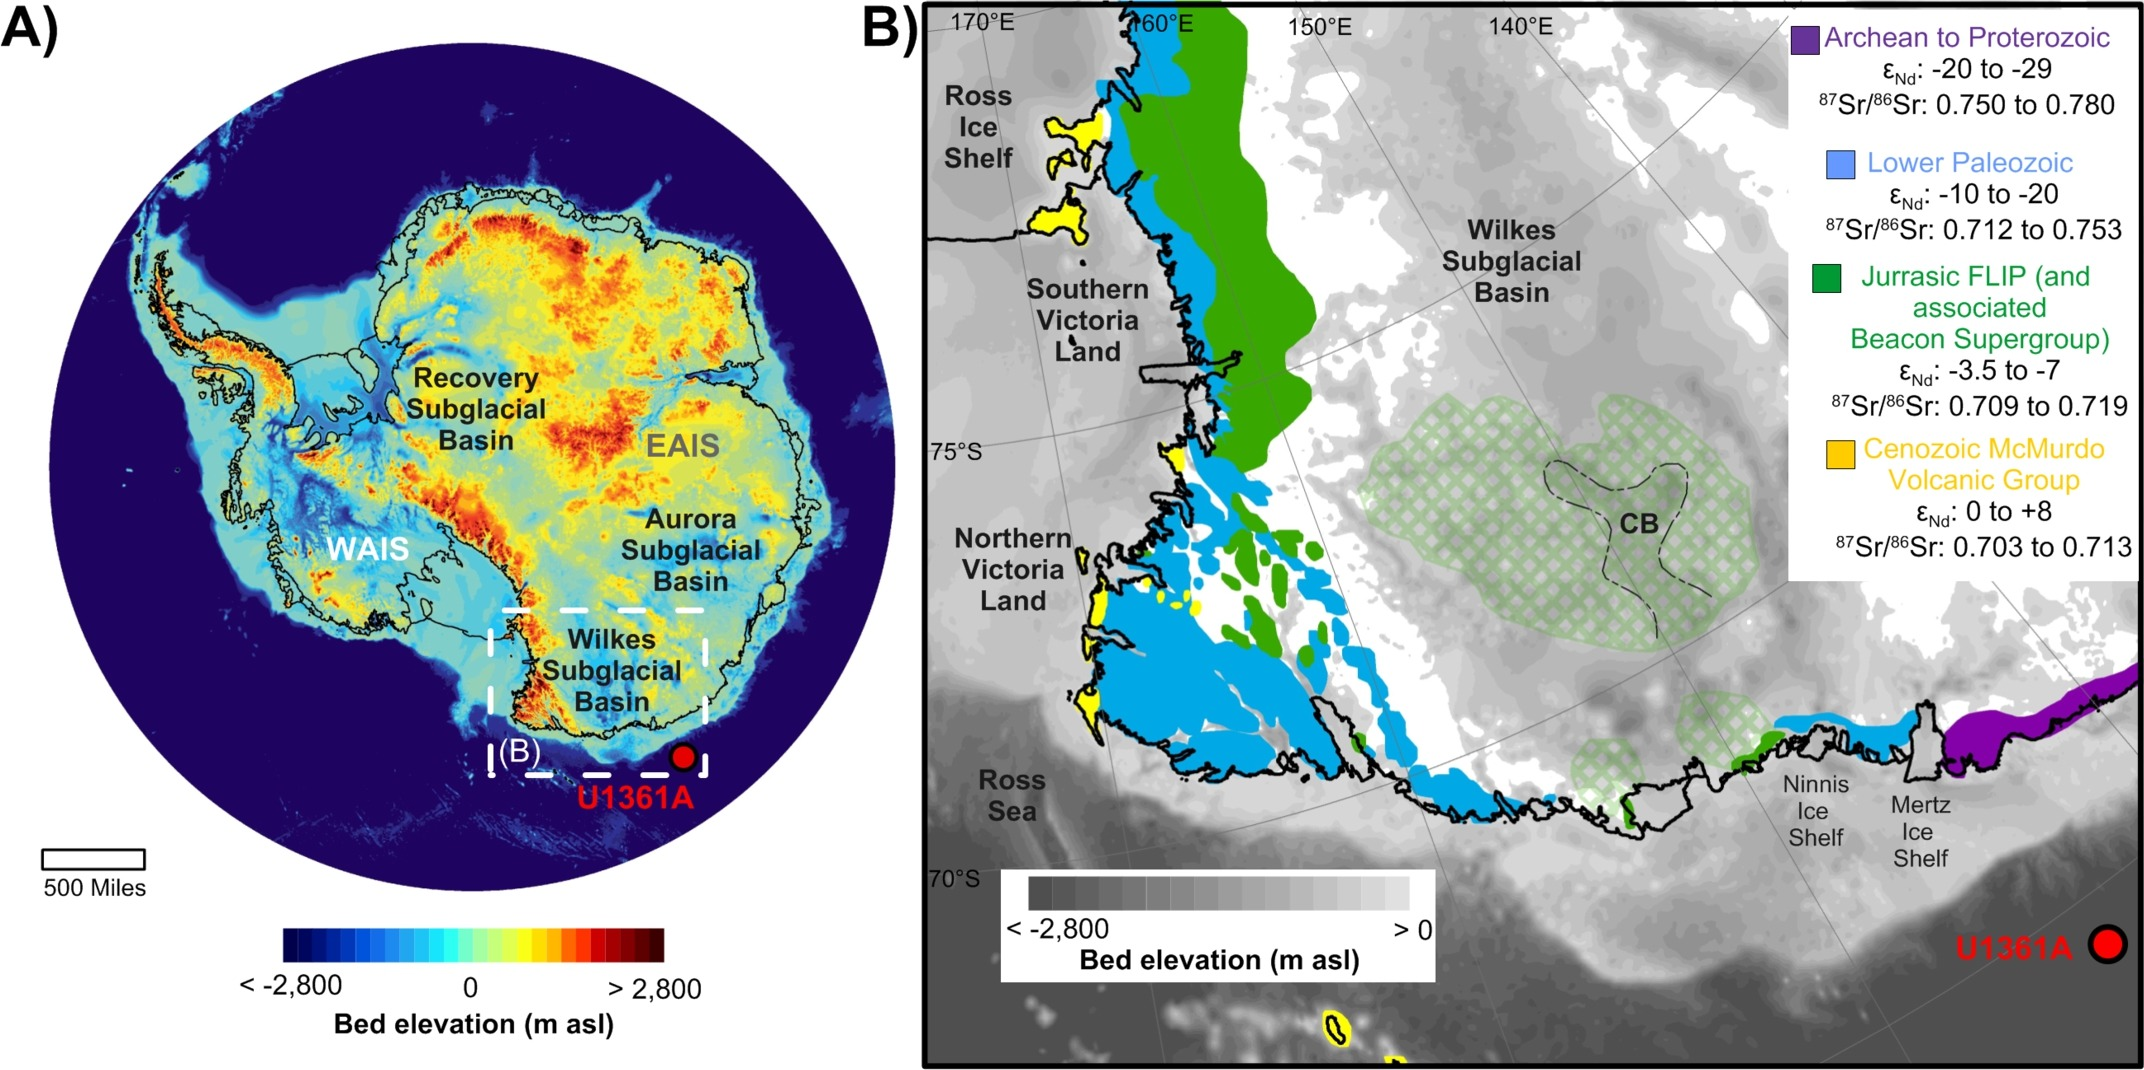 The Wilkes Subglacial Basin is located in Antarctica.